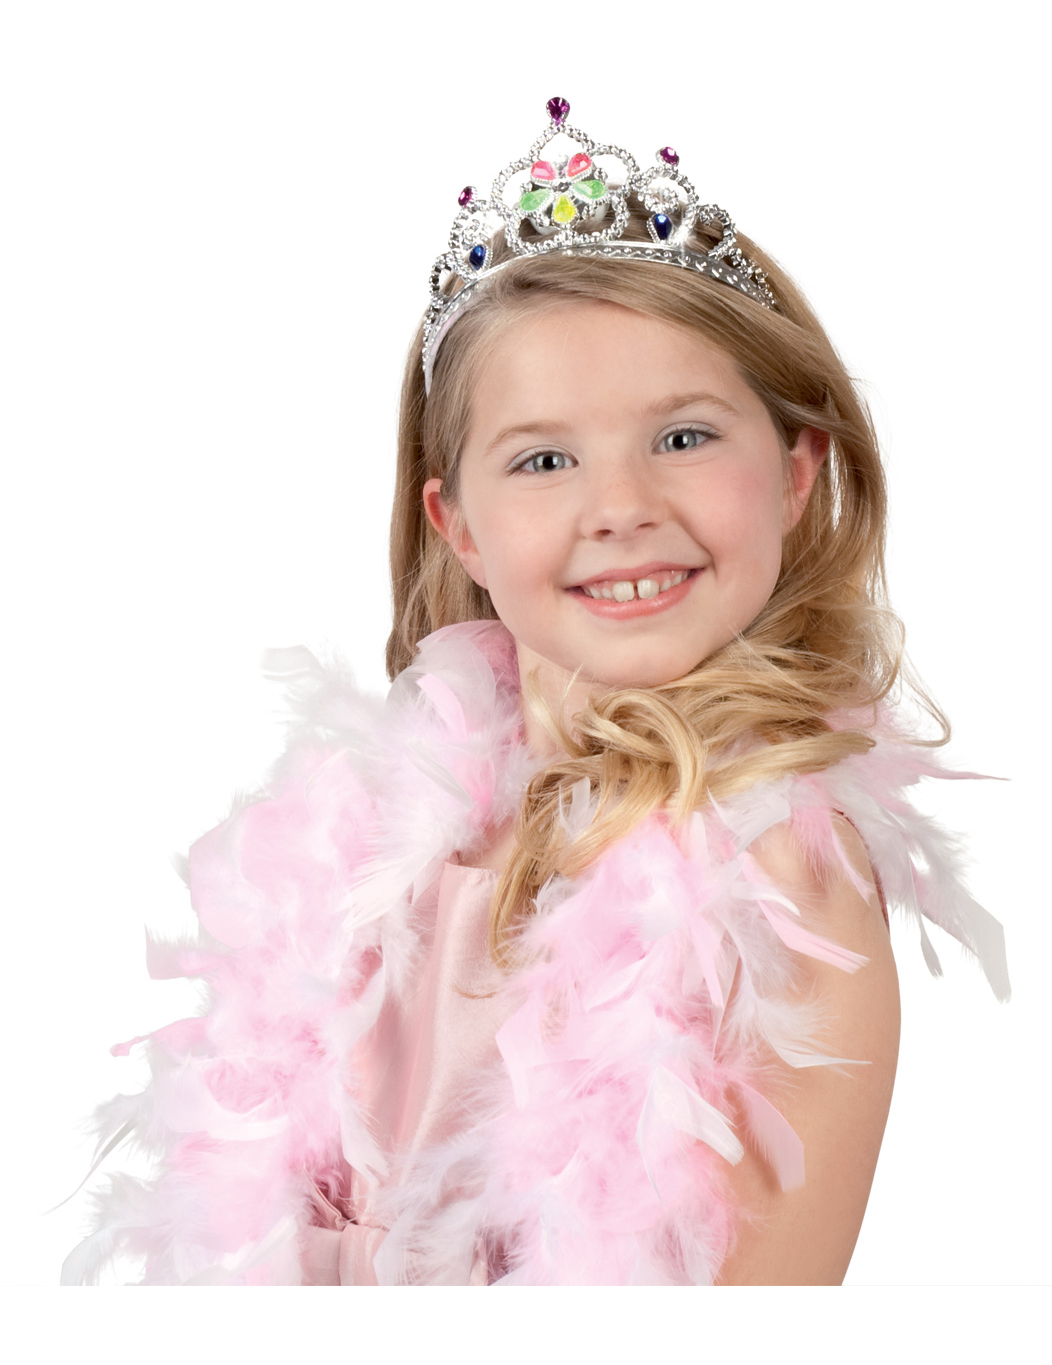 Princess & Tiaras is a Houston, TX based full-service spa on wheels & children's party bus offering a unique spa and beauty experiences. Princess & Tiaras is a Houston, TX based full-service spa on wheels & children's party bus offering a unique spa and beauty experiences.